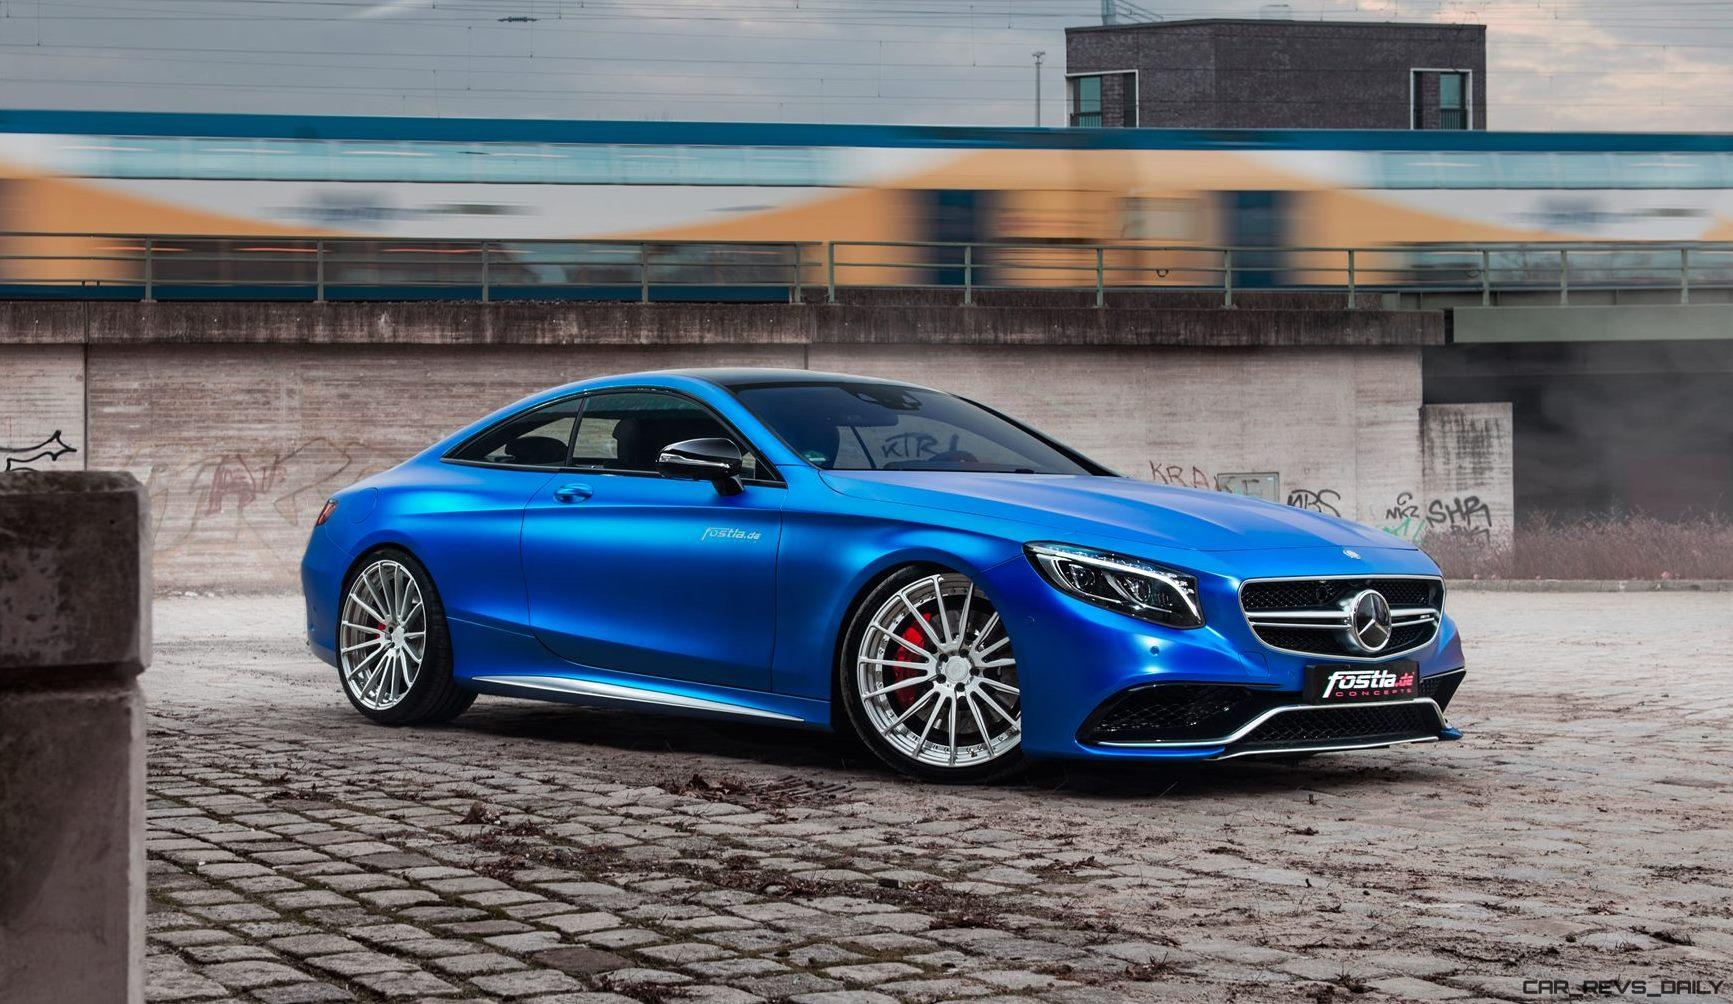 S 63 Amg 2017 >> 2017 Mercedes-AMG S63 Coupe By FOSTLA.de Is Dripping Blue Chrome » Car-Revs-Daily.com